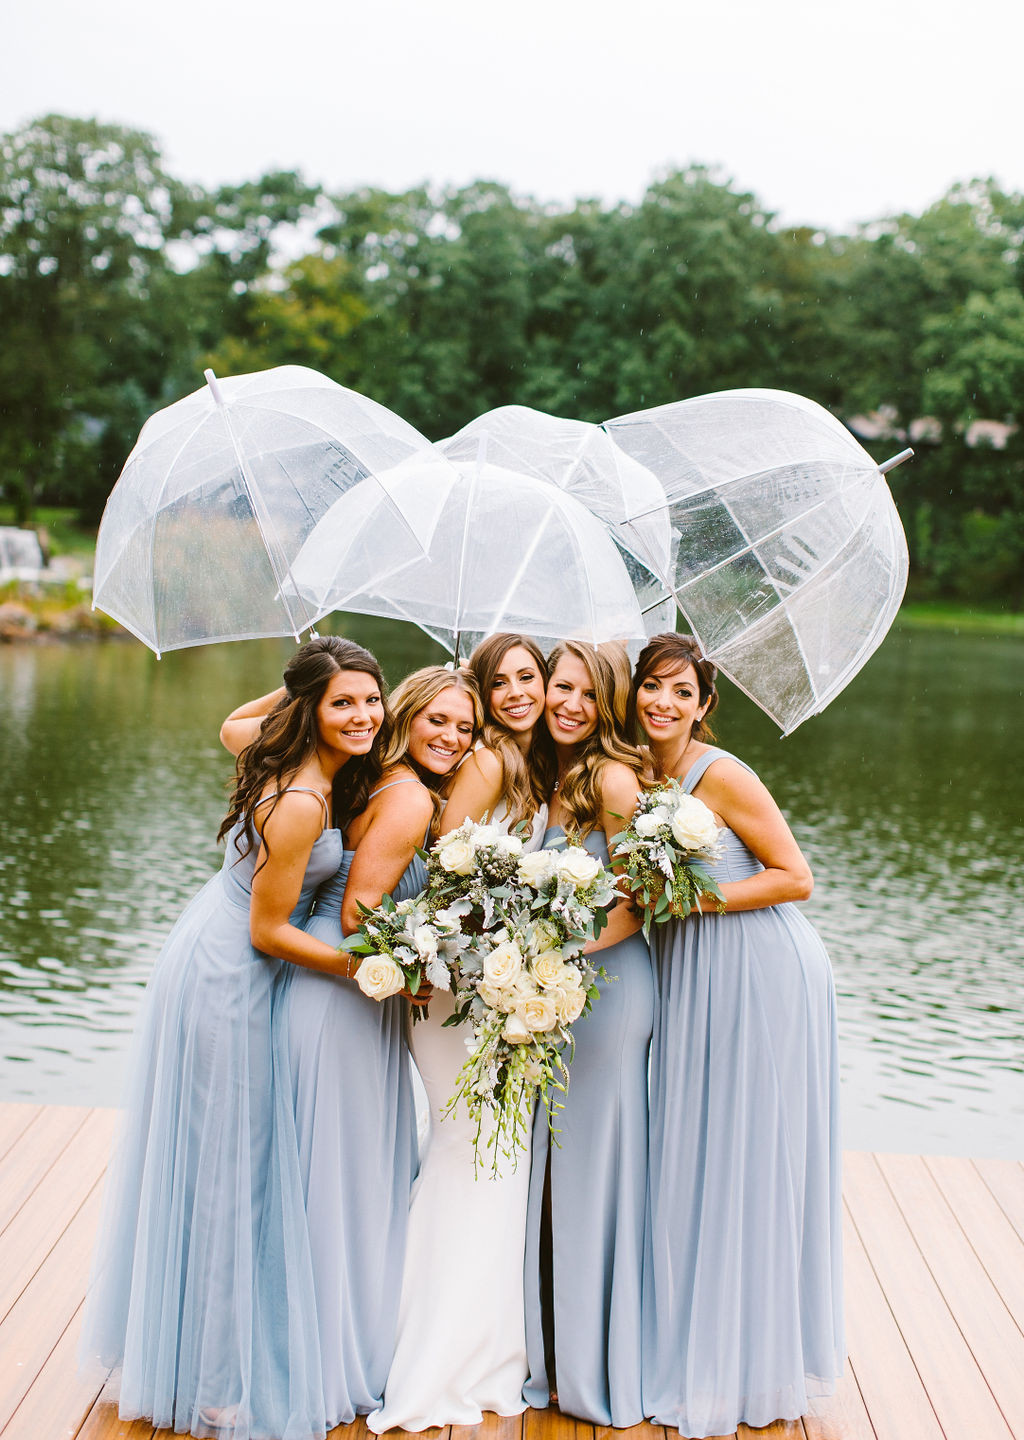 Bridal Party Dock Umbrellas